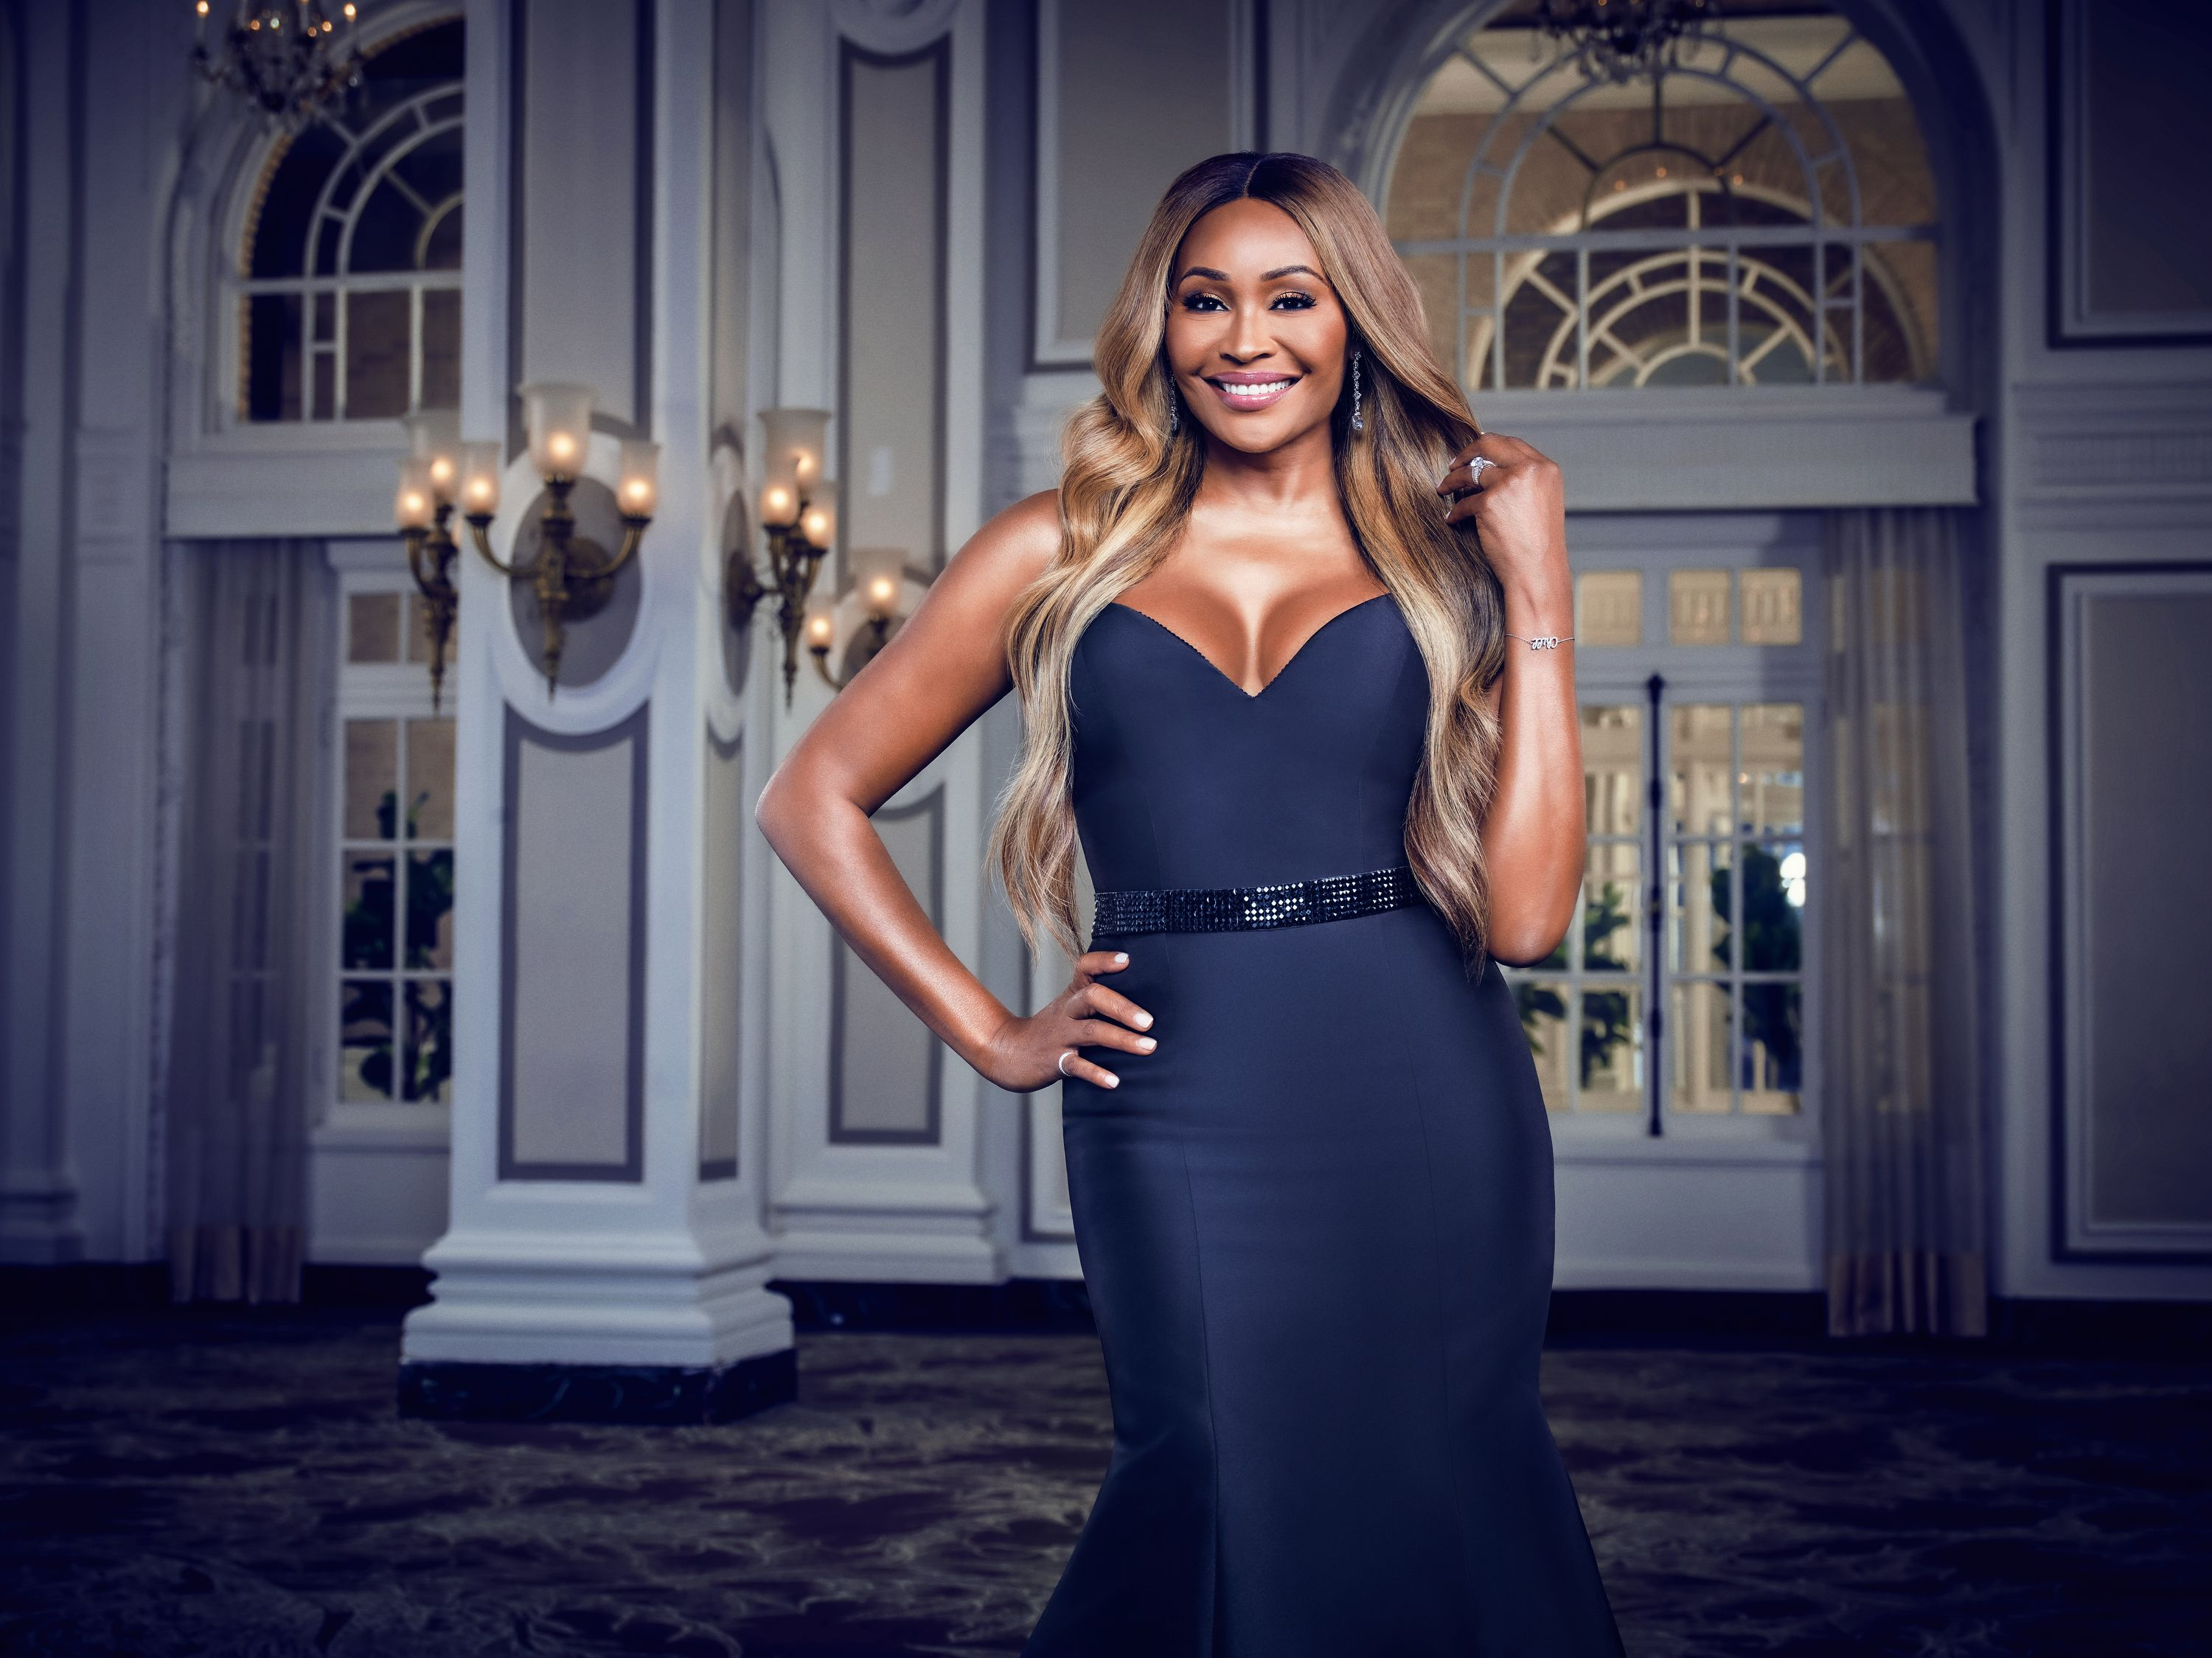 Cynthia Bailey's 'Real Housewives' promo